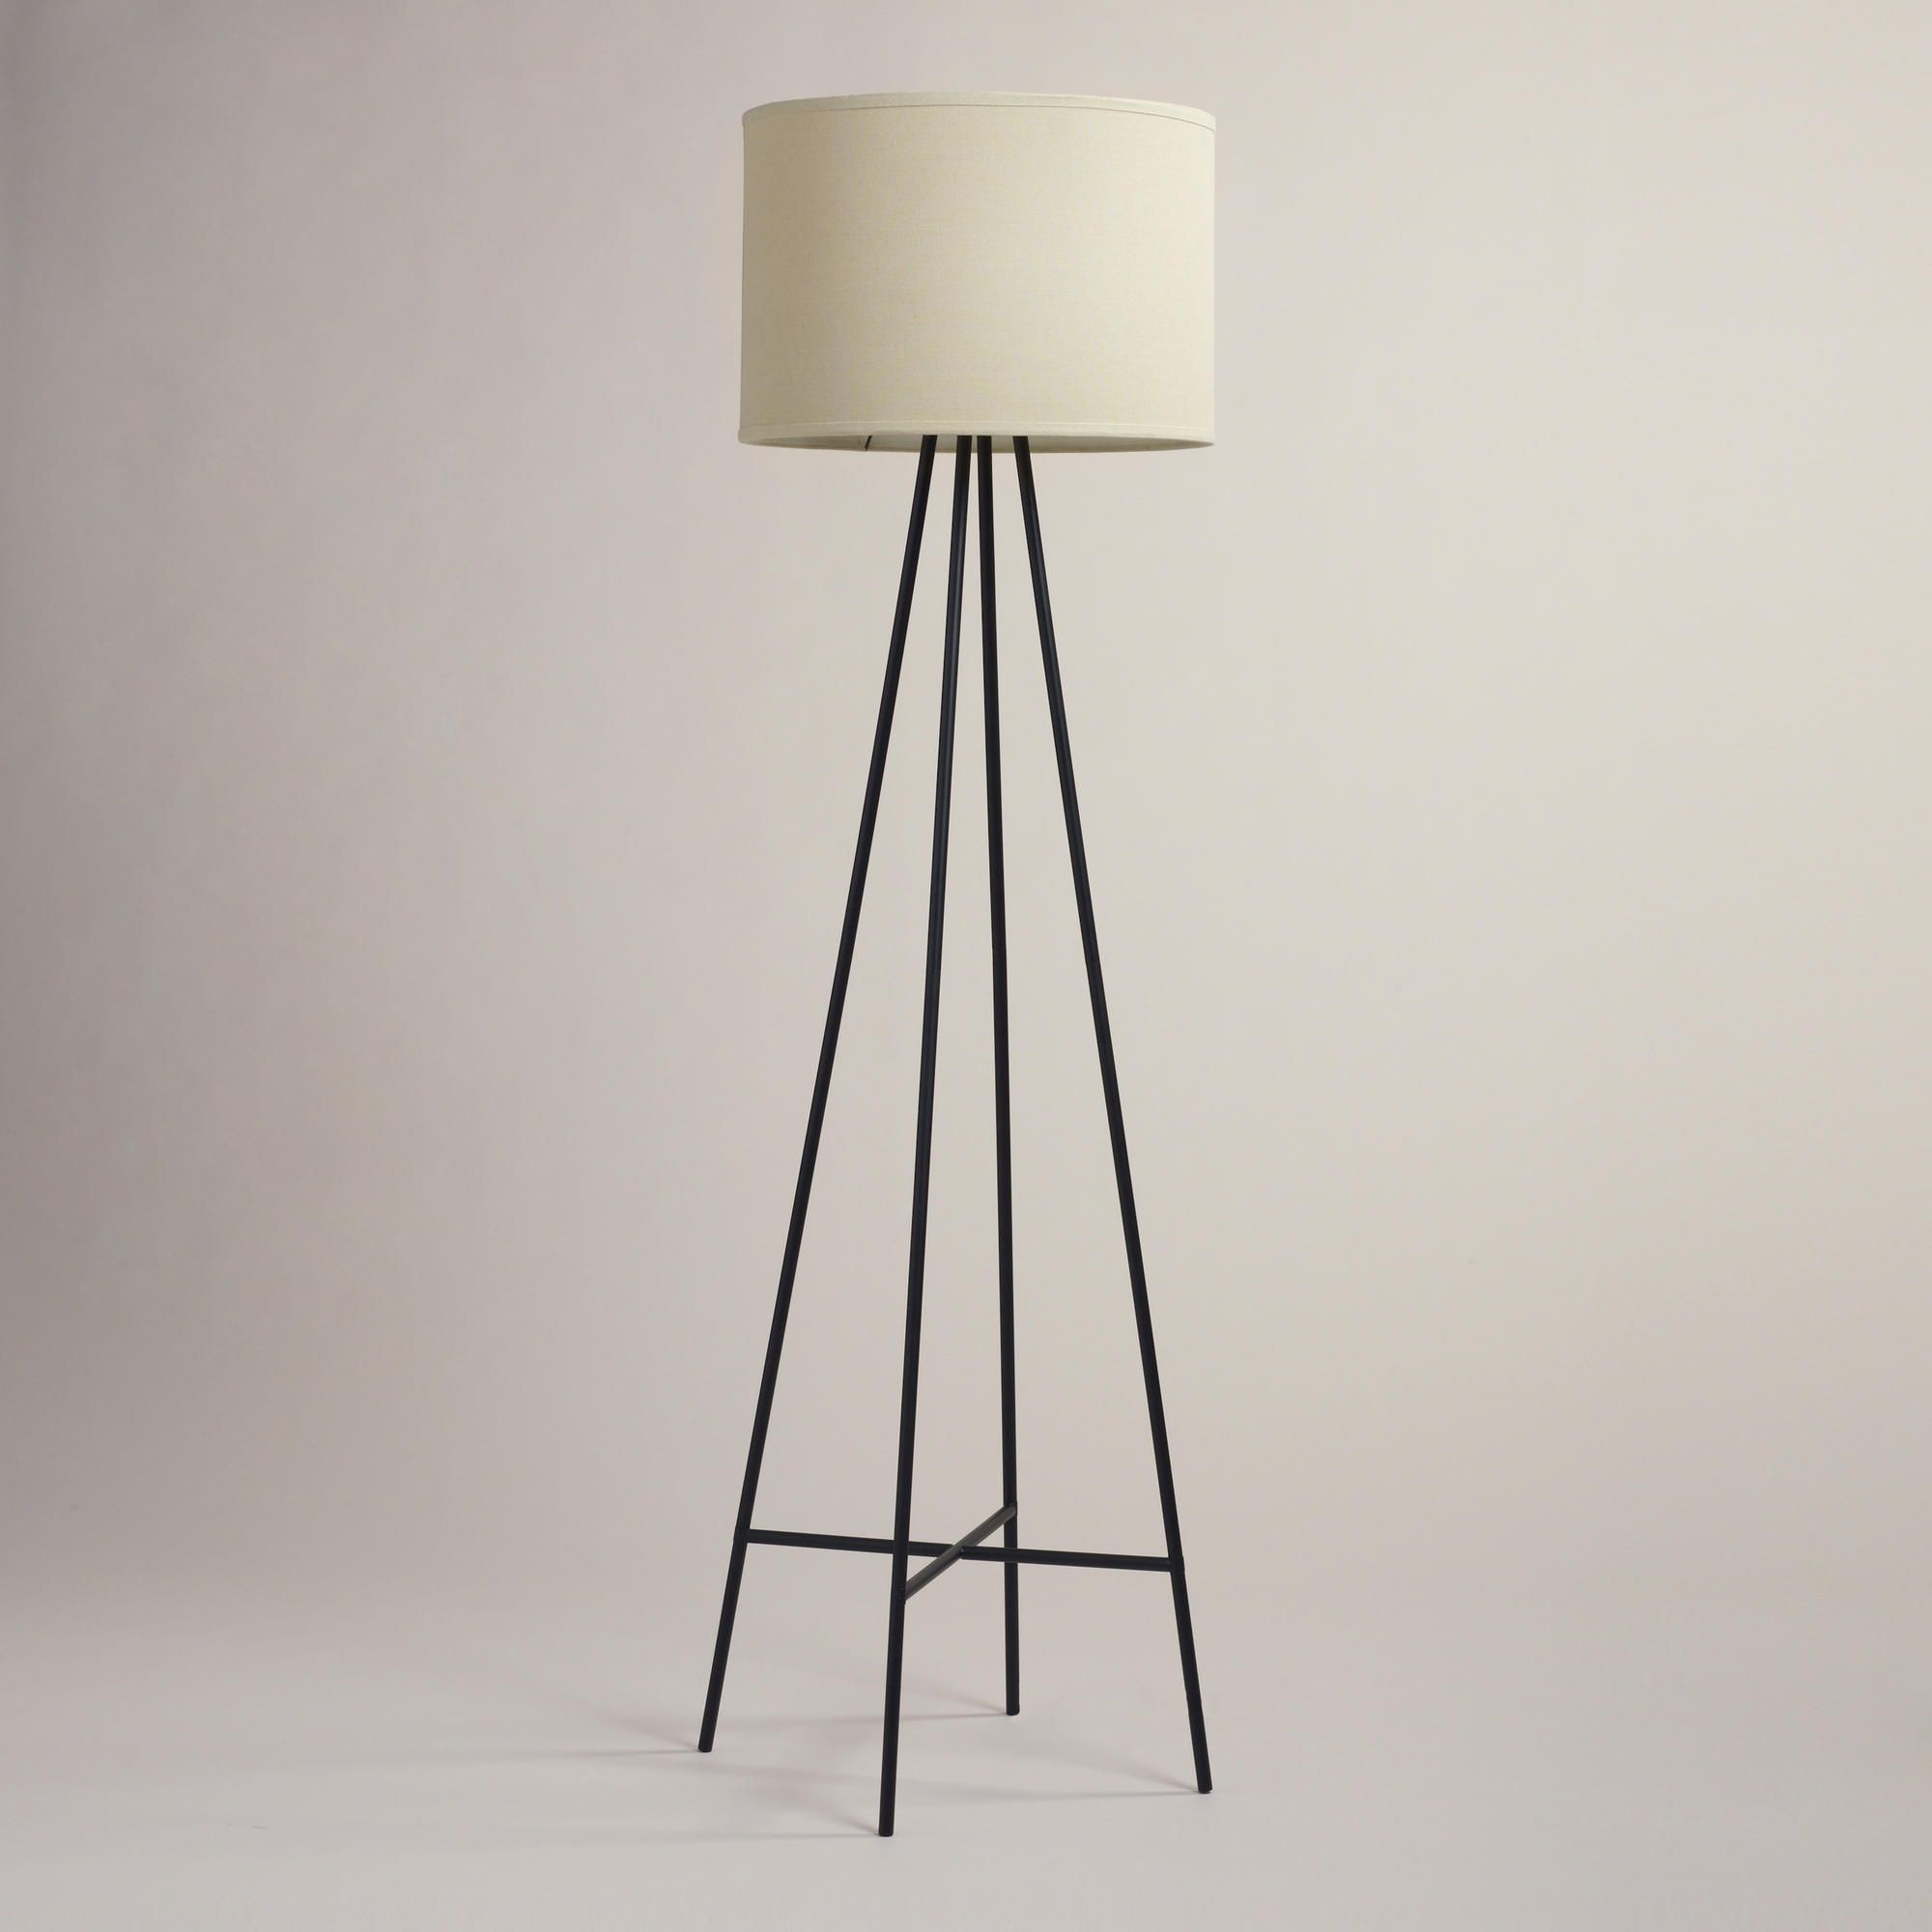 Tristan Floor Lamp Stand 72$ (shade solde separately; one thing I dislike  about